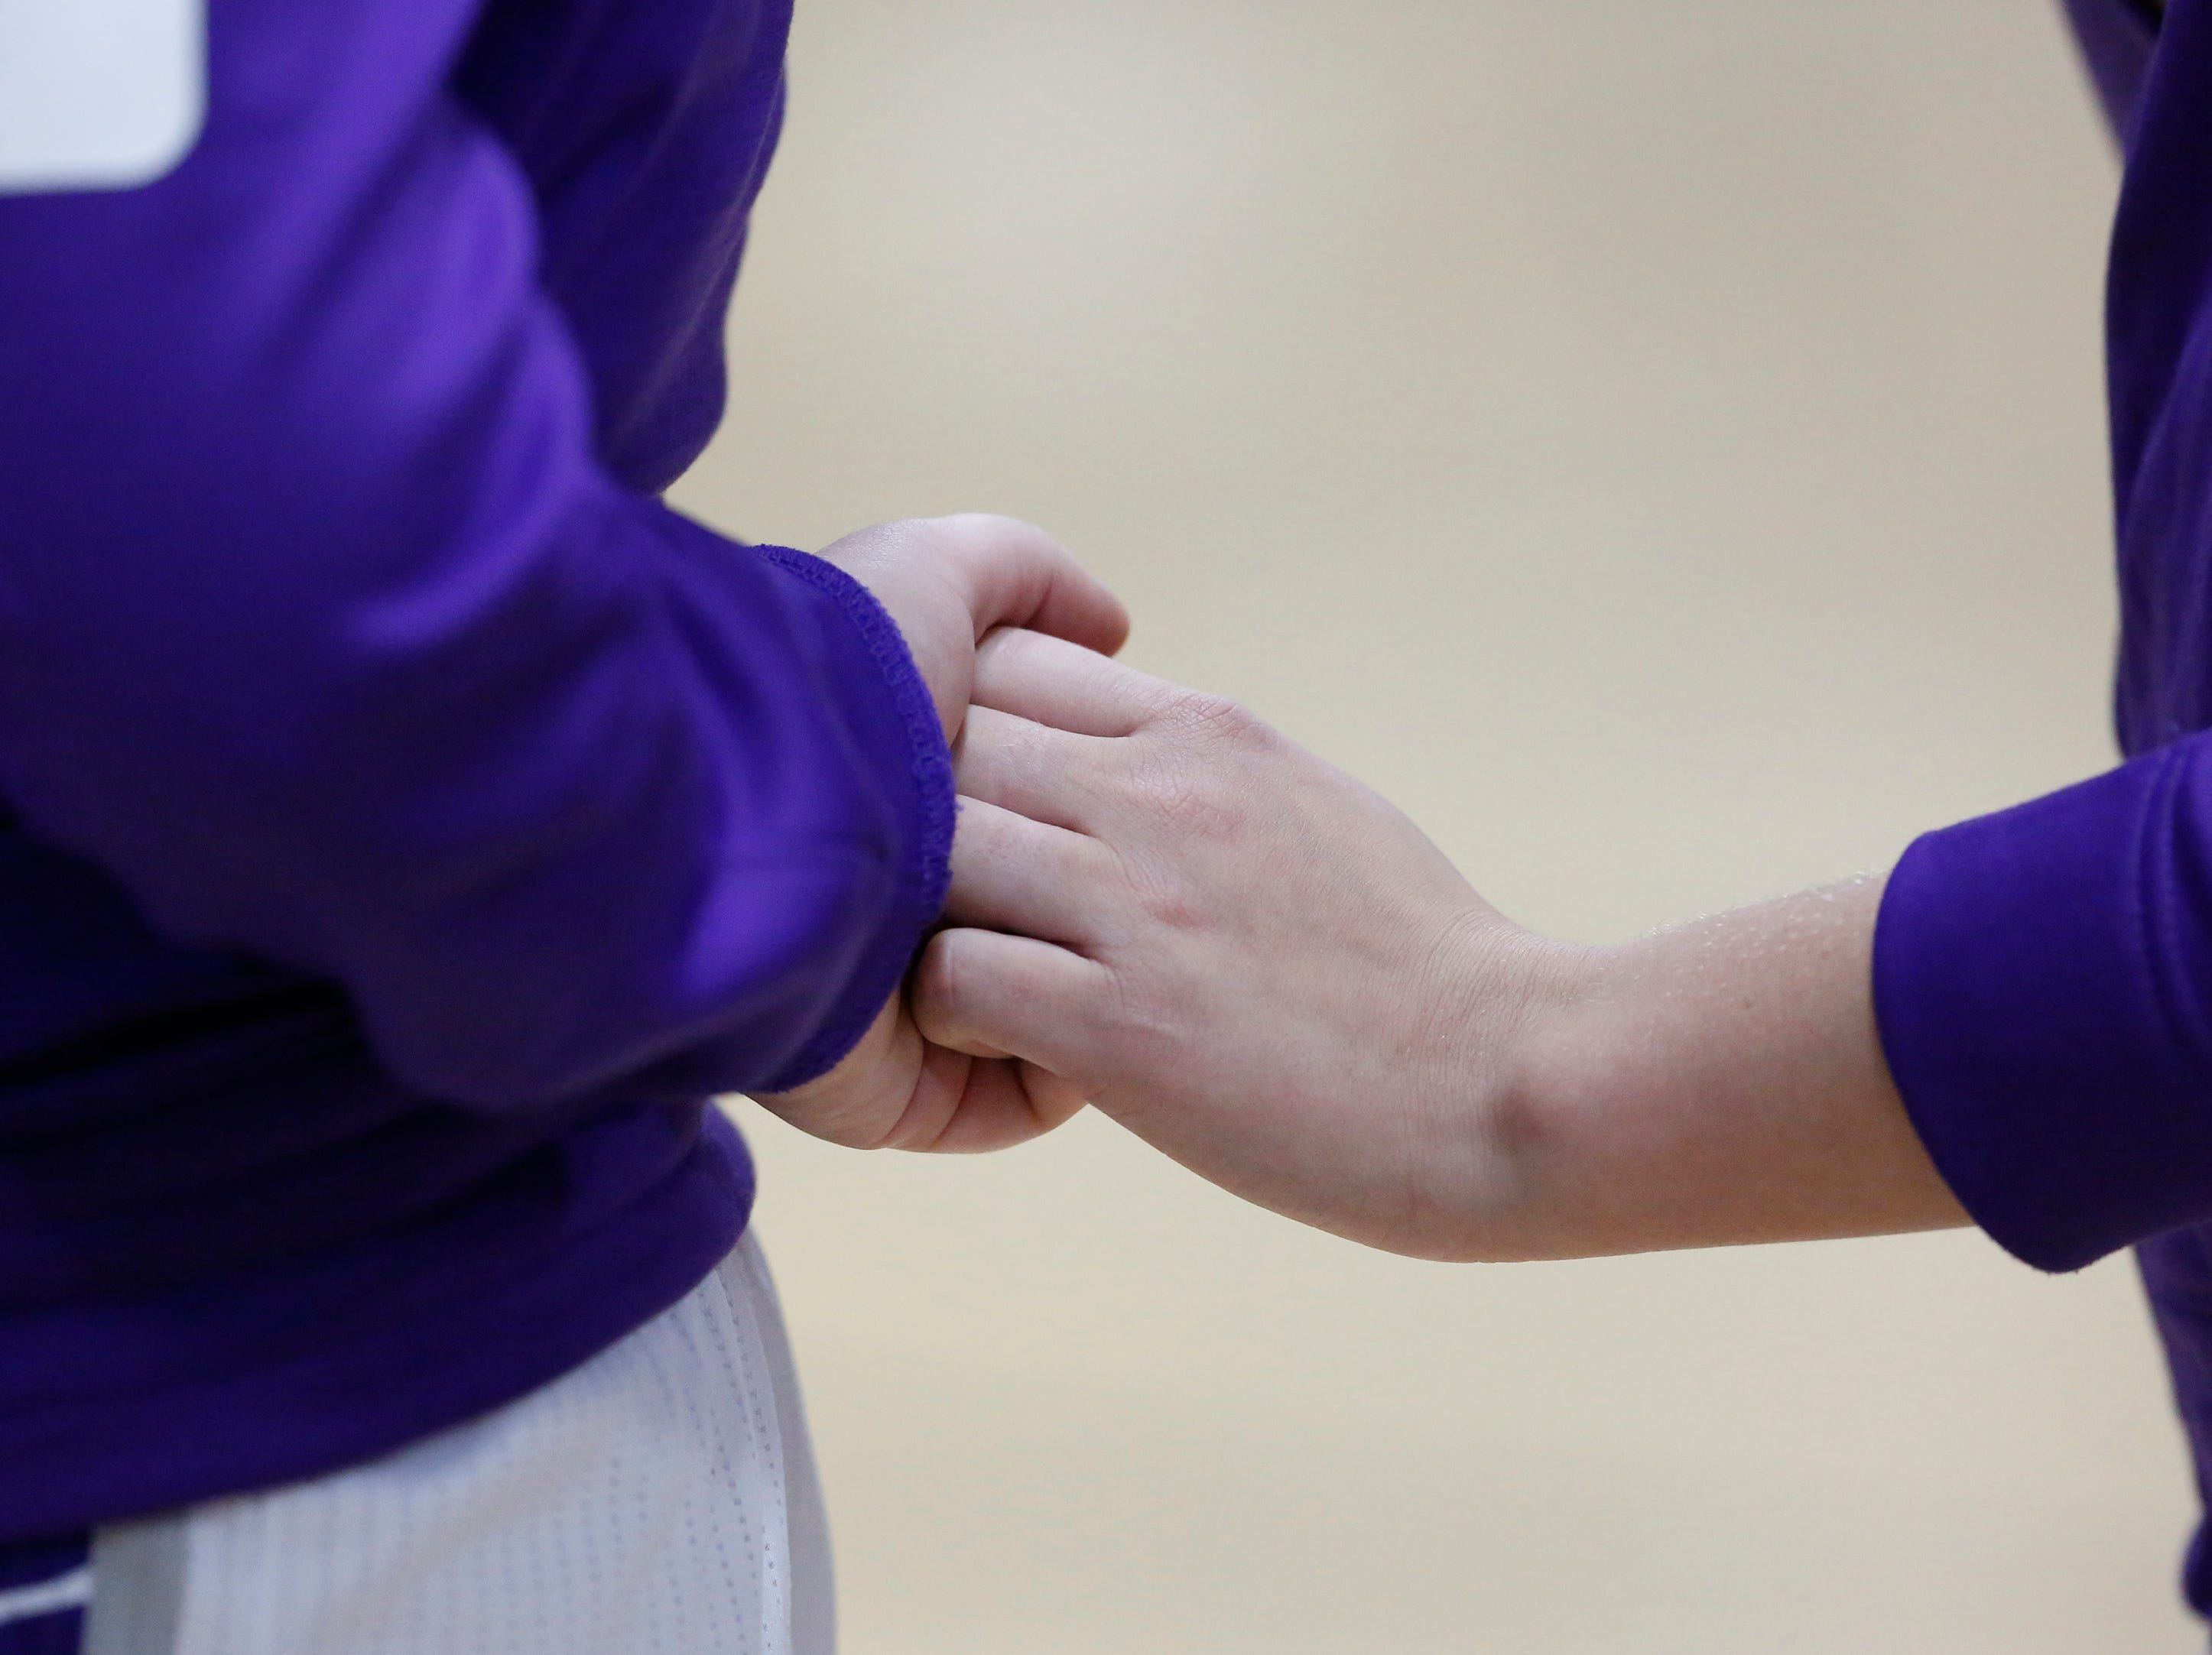 Kiel's girls basketball teammates hold hands during the National anthem before an EWC matchup against Roncalli at Kiel High School Thursday, January 17, 2019, in Kiel, Wis. Joshua Clark/USA TODAY NETWORK-Wisconsin